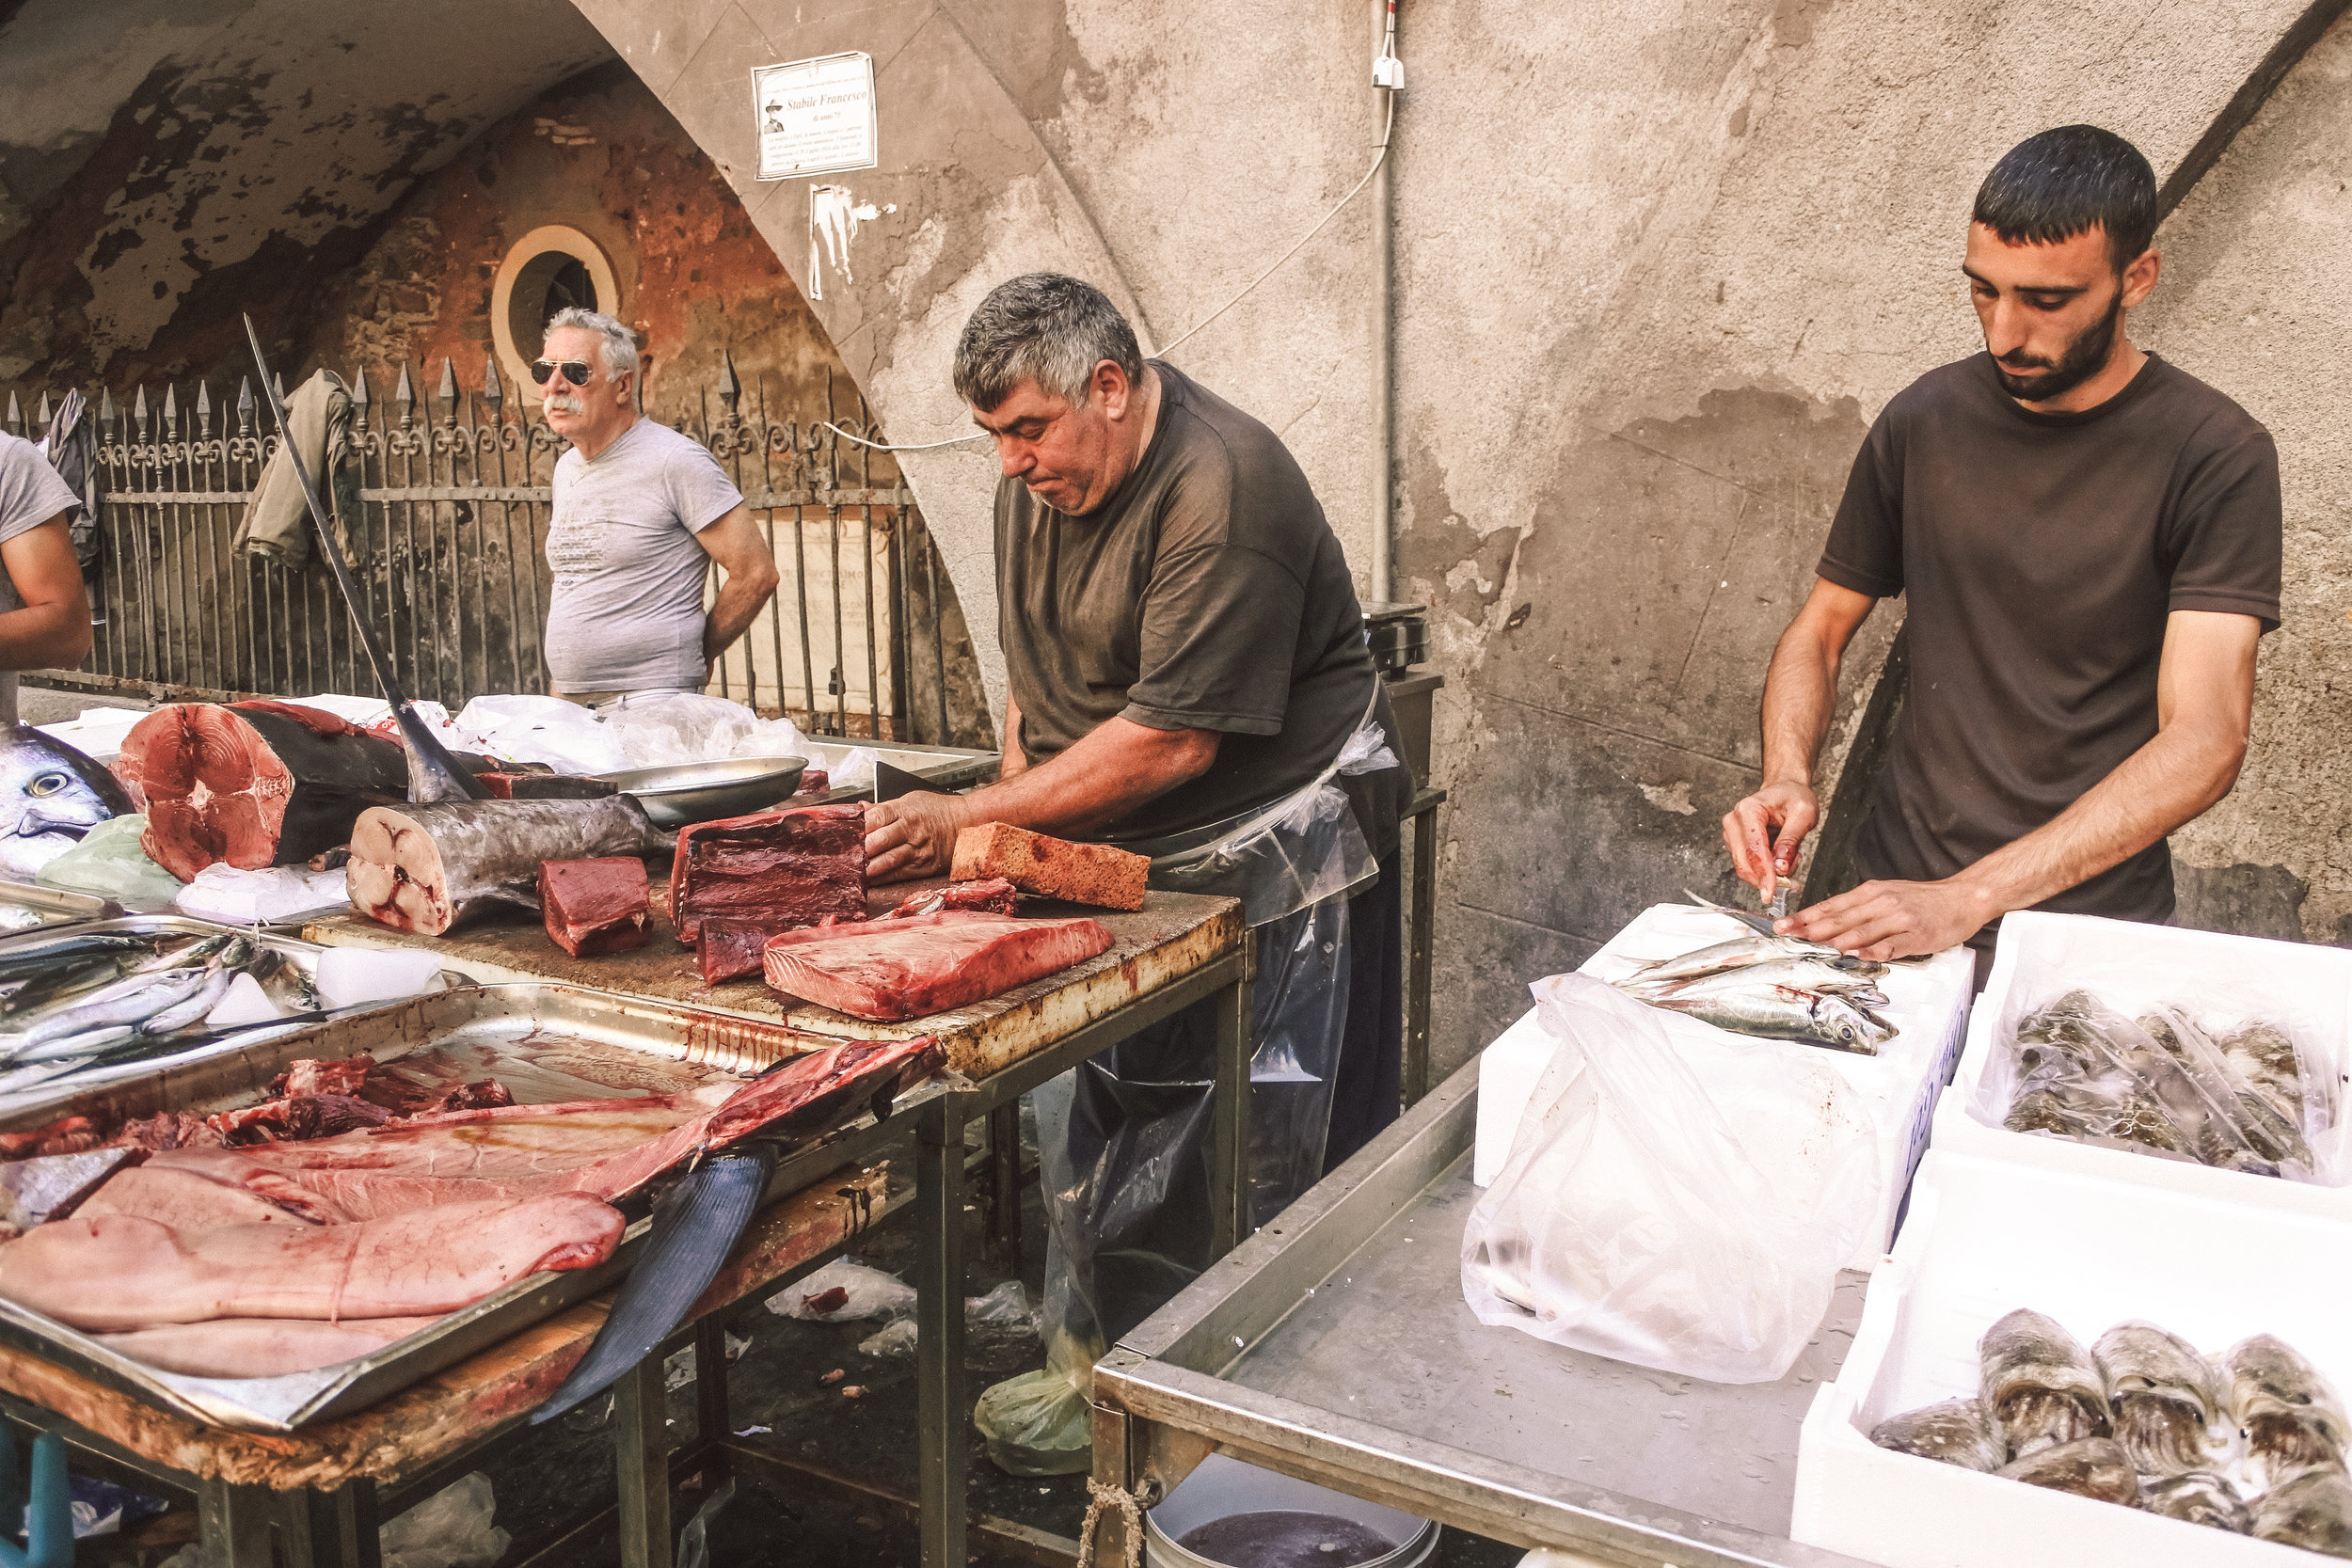 Fish mongers and their catches of the day at La Pescheria in Catania, Italy